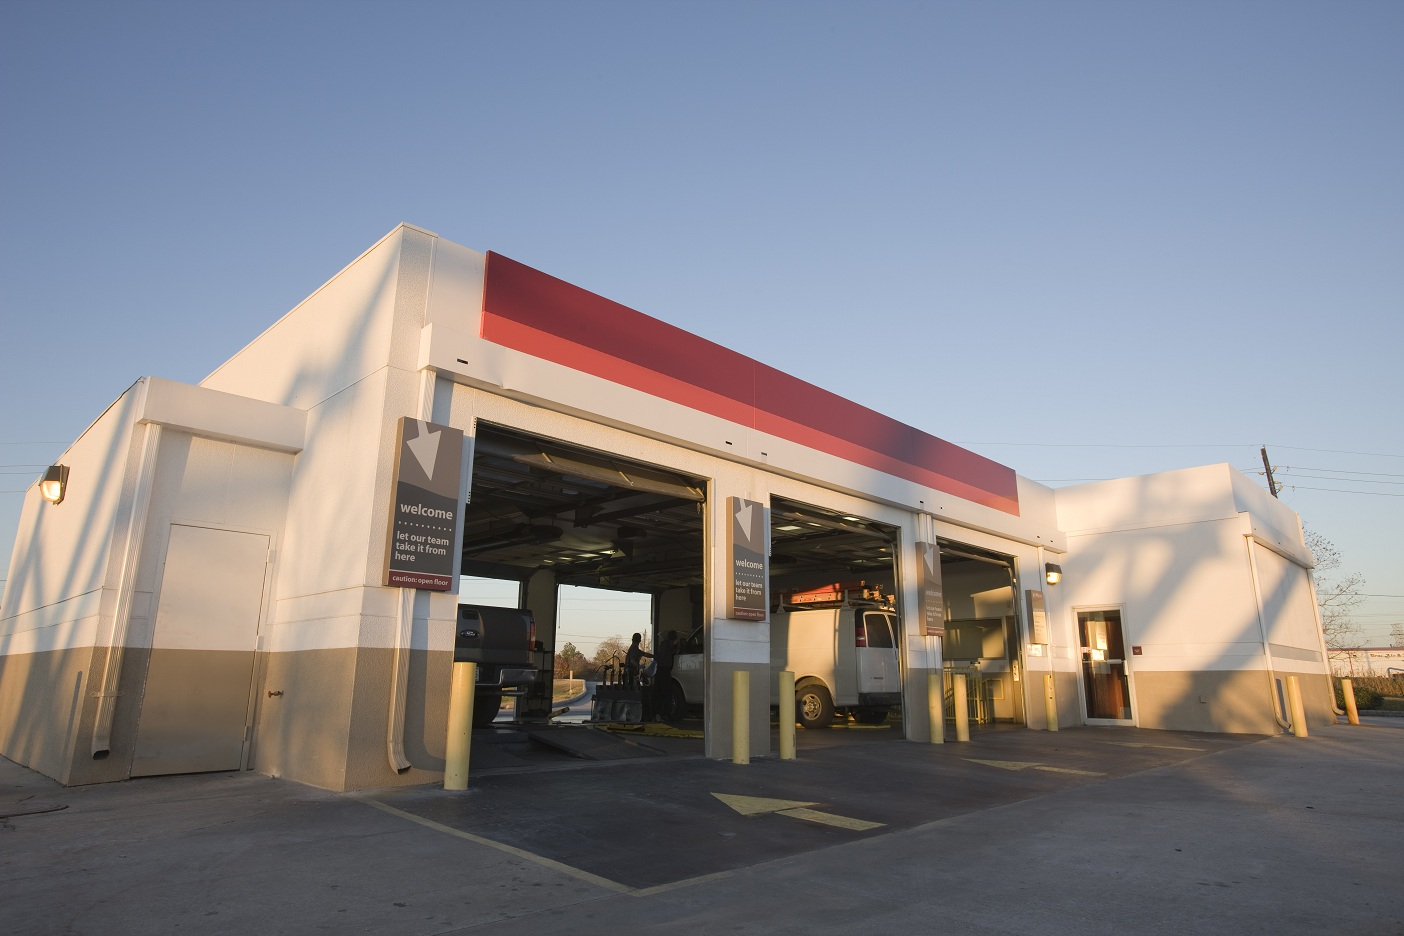 Jiffy Lube in Casa Grande, AZ